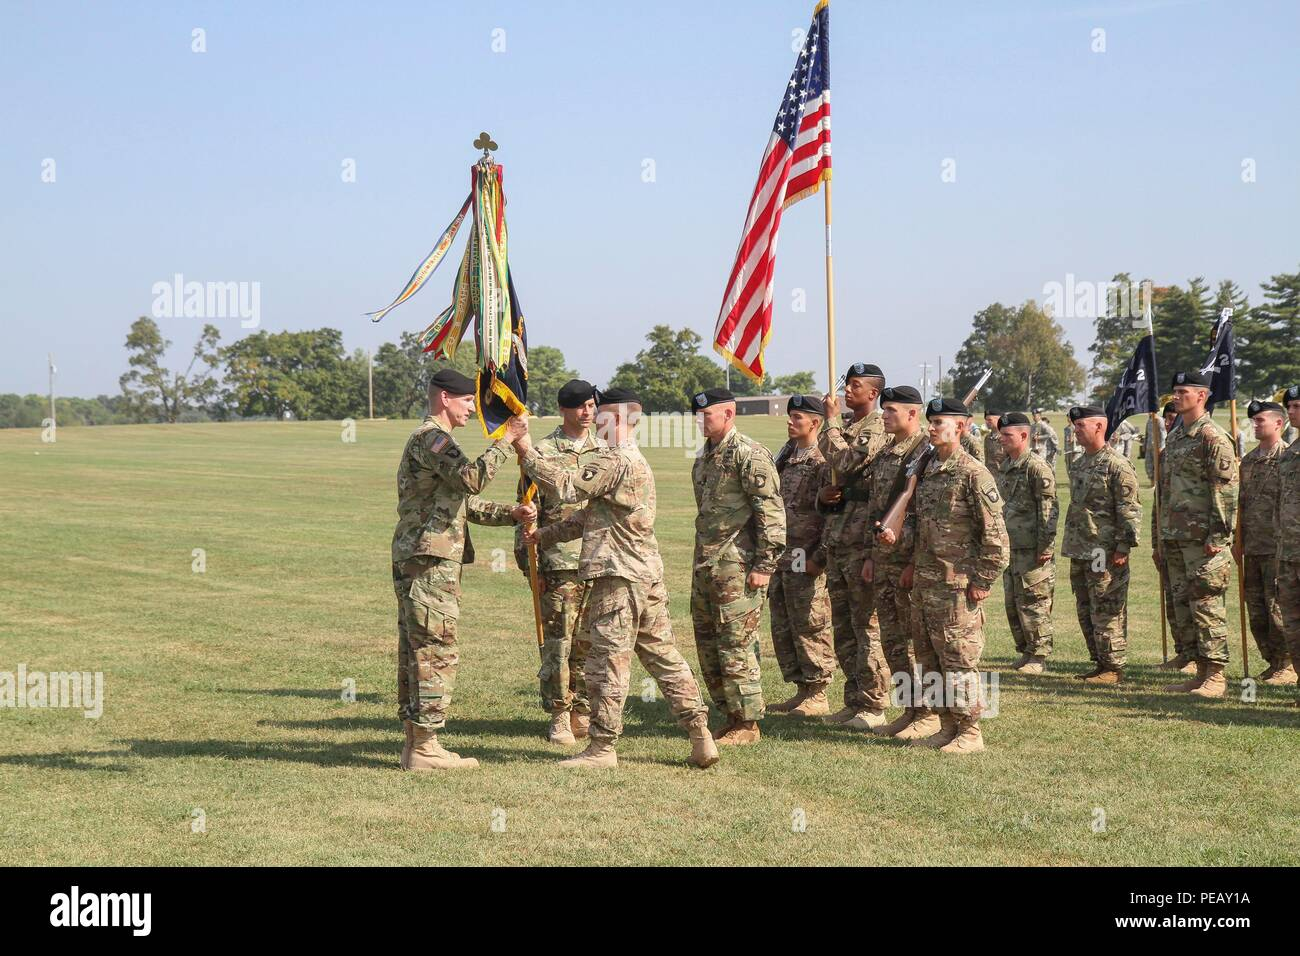 Lt. Col. Christopher Hossfeld, outgoing commander of 2nd Battalion, 327th Infantry Regiment, 1st Brigade Combat Team, 101st Airborne Division, passes the guidon colors to Col. Robert Campbell, 1st Brigade commander, during the battalion's change of command ceremony Sept. 1, 2015, at the Division Parade Field. The passing of the guidon signifies Hossfeld's relinquishing of command and passing the authority on to his successor. (U.S. Army photo by Sgt. Samantha Stoffregen, 1st Brigade Combat Team) - Stock Image